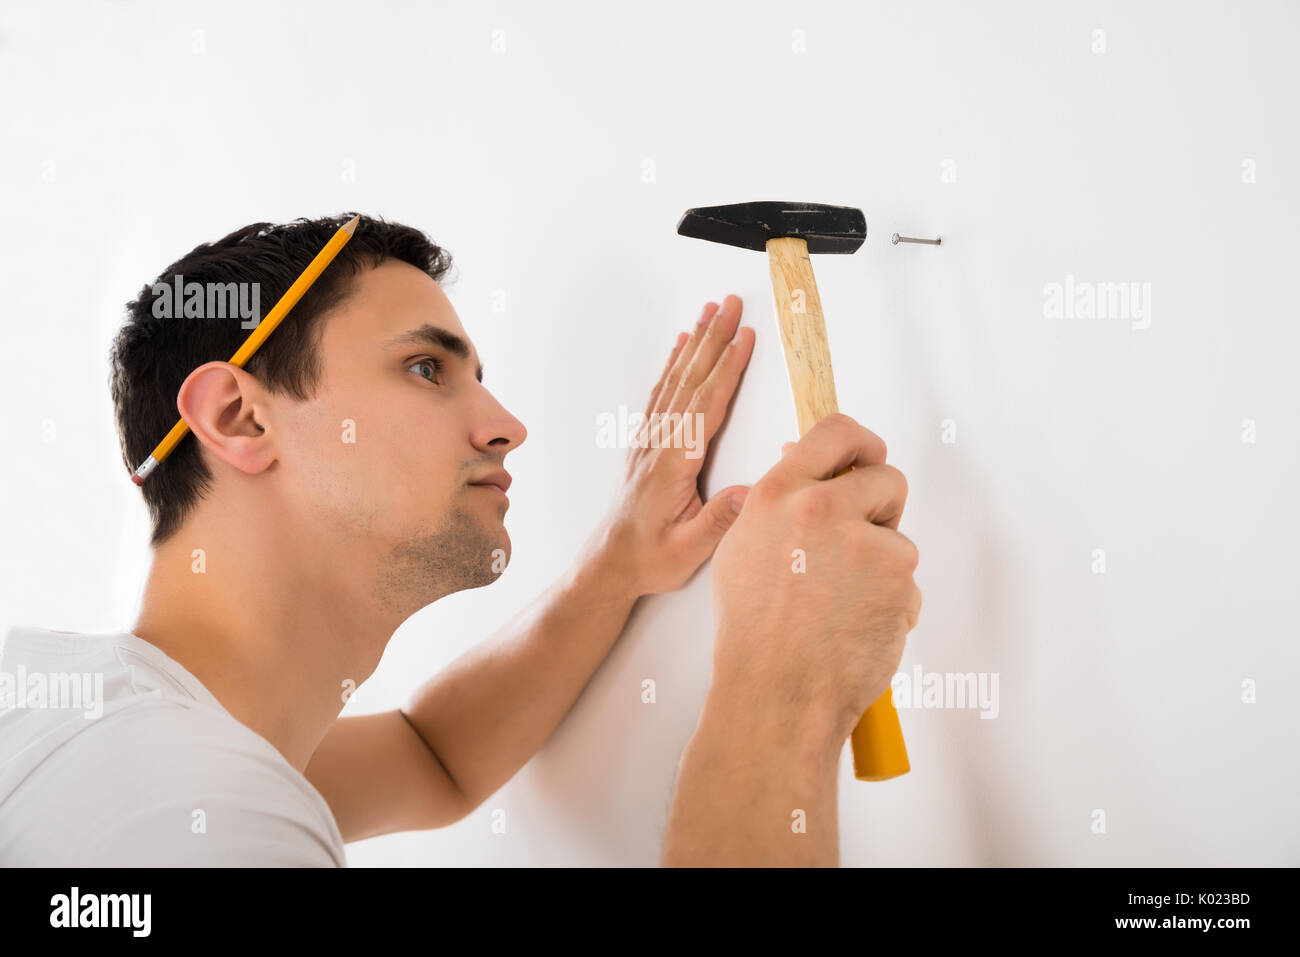 Side view of young man hammering nail on white wall at home - Stock Image